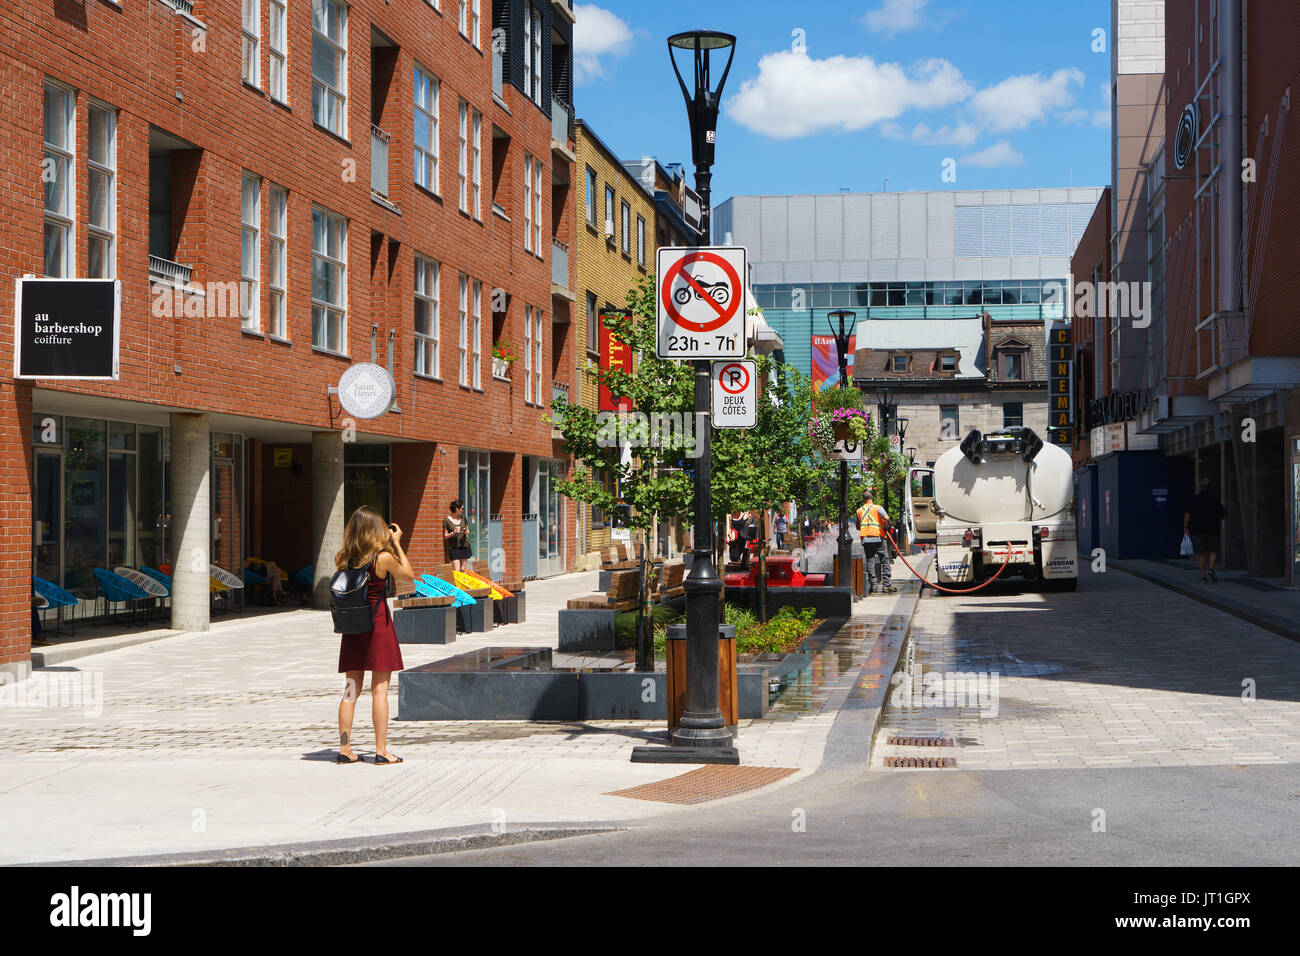 Emery street, Montreal, province of Quebec, Canada. - Stock Image